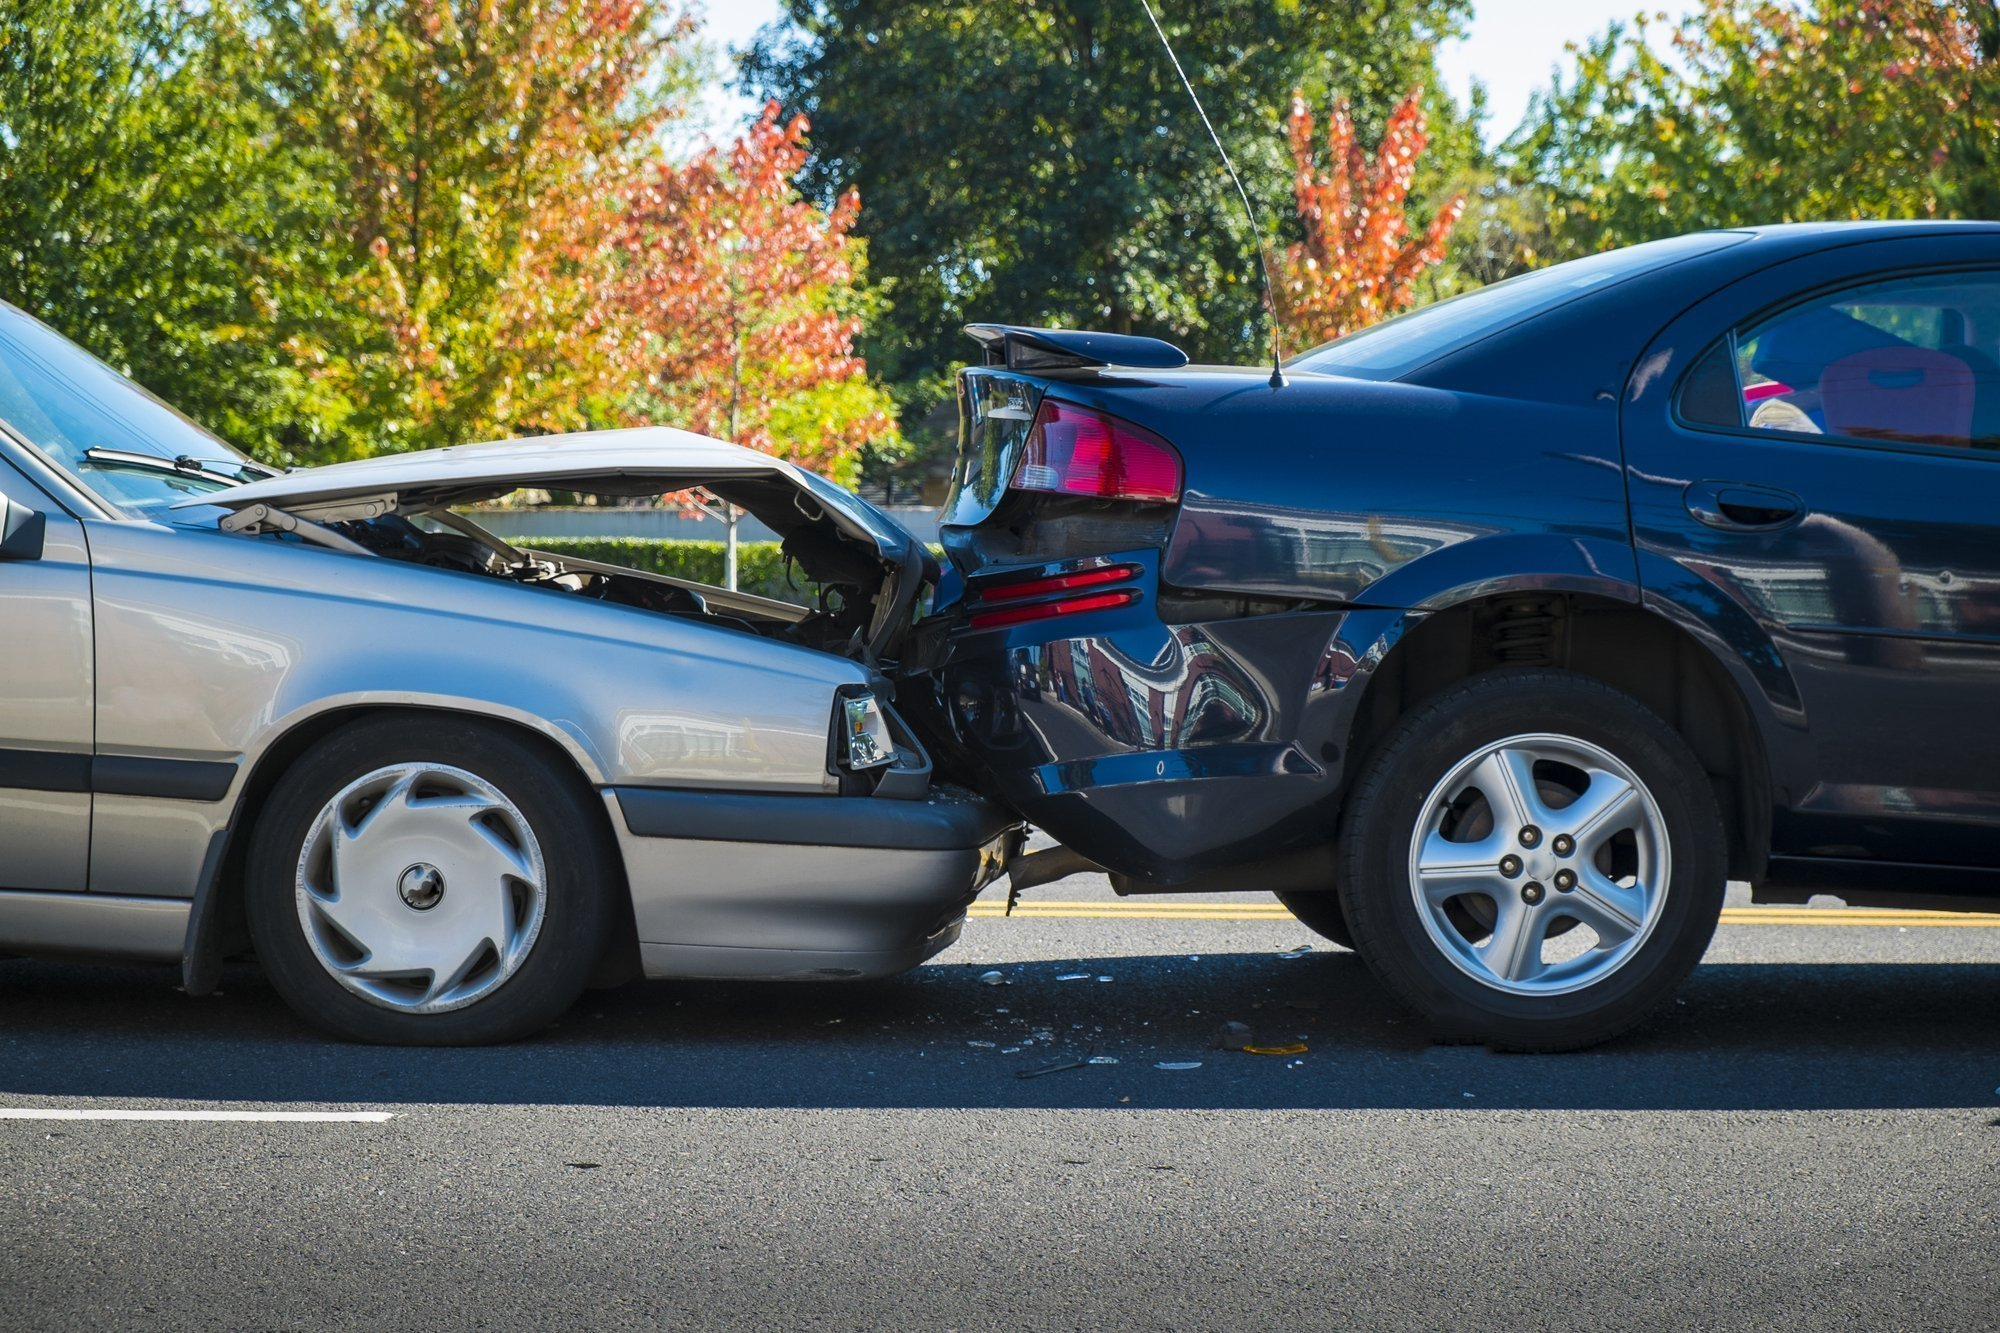 How to Compensate for Property Damage Caused by a Careless Driver